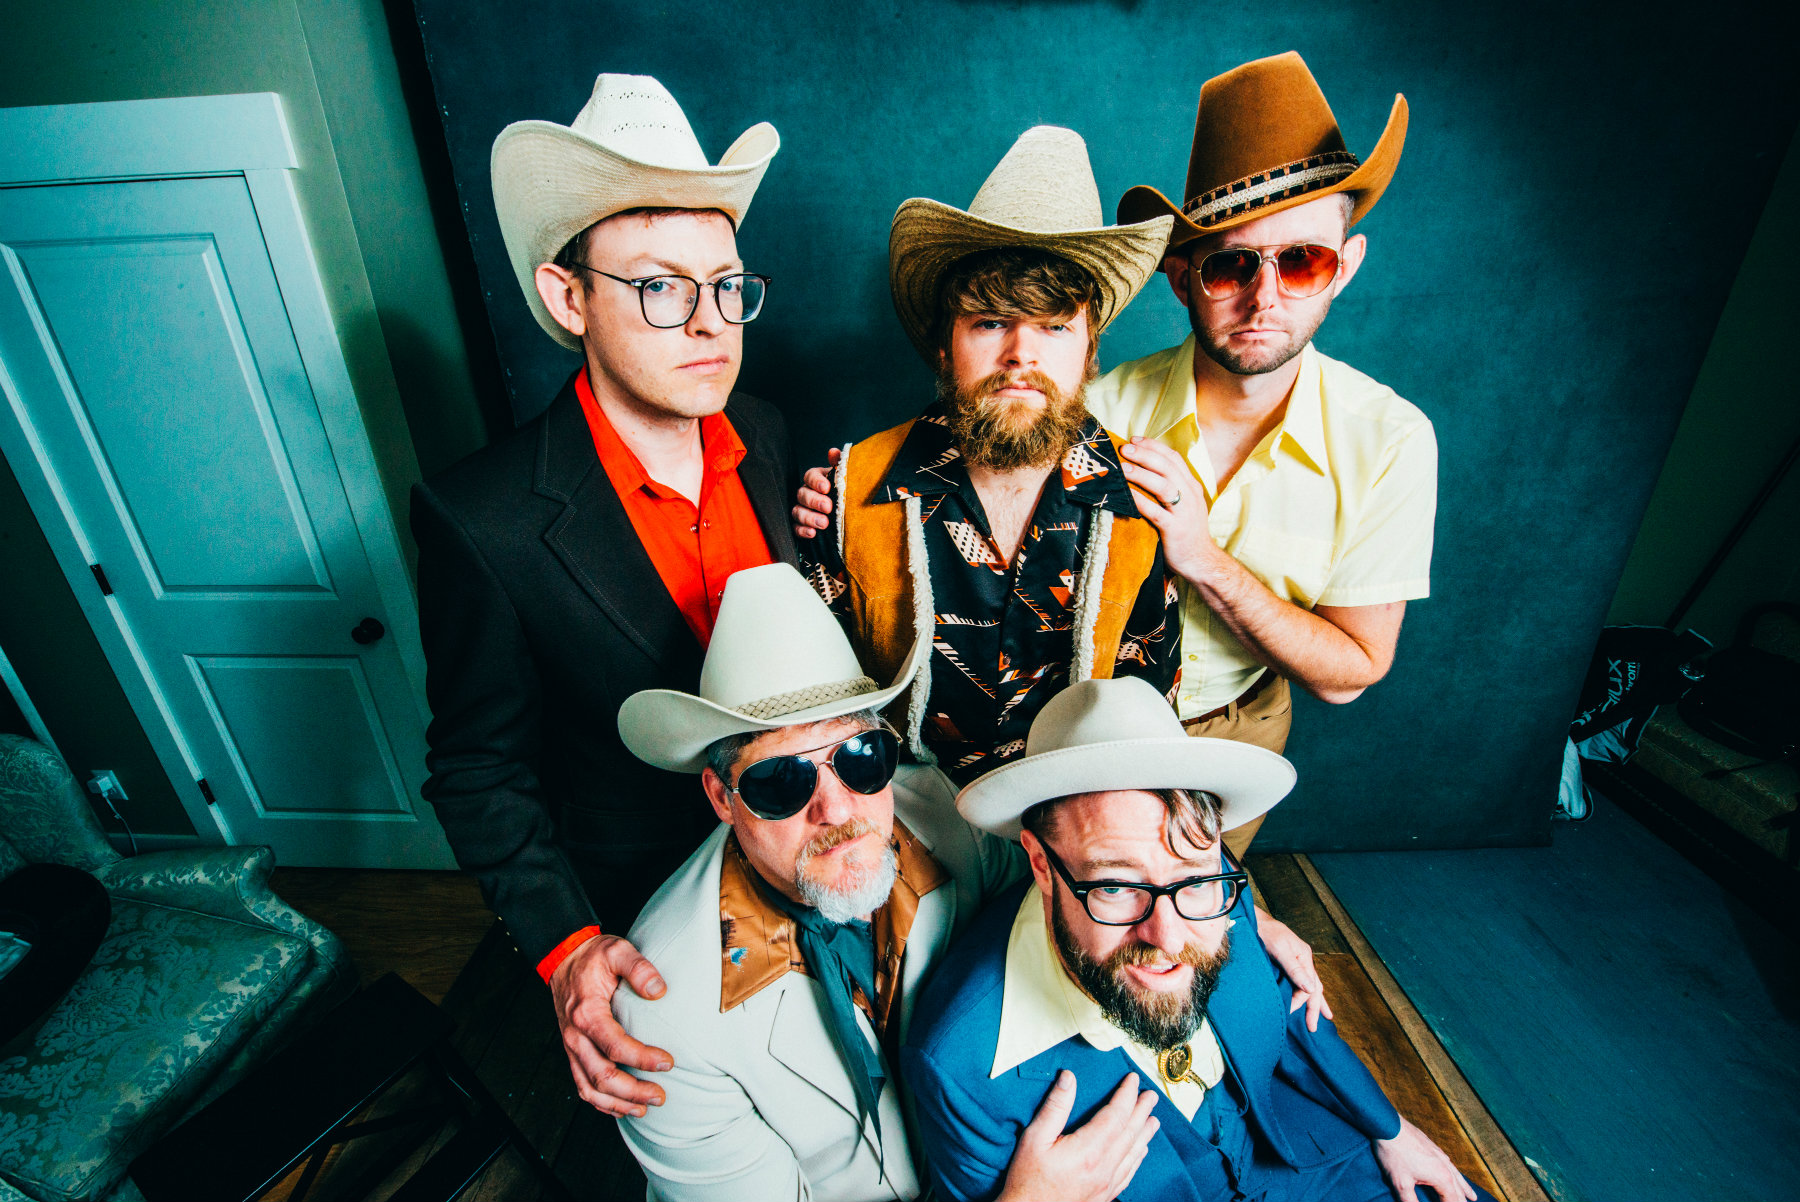 Spinal Tap meets Americana: Musical parody band The Cleverlys transform today's hits into bluegrass standards